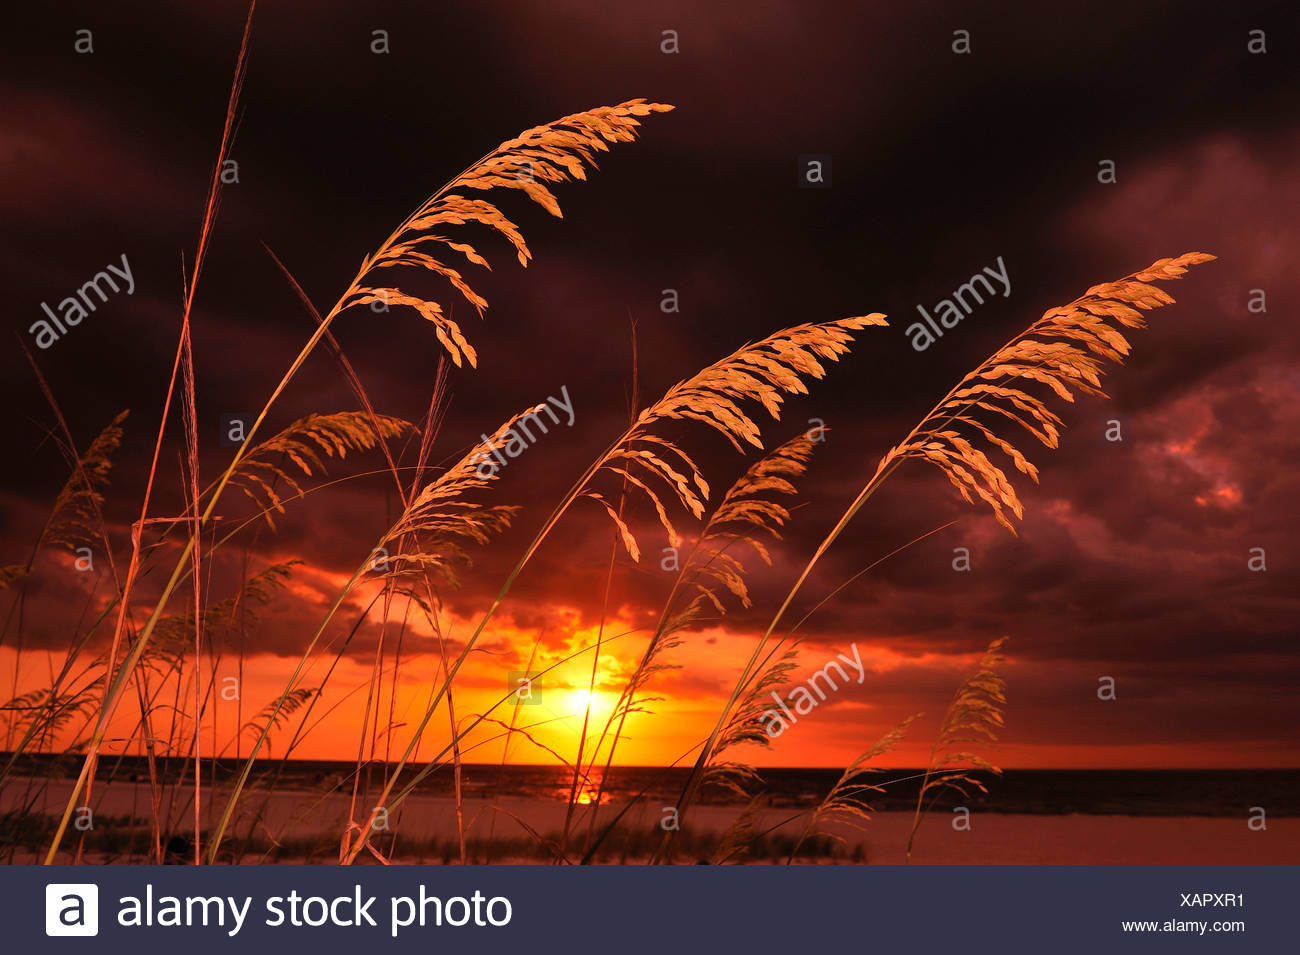 Grasses on sand dunes on beach with a colorful sunset in Florida. - Stock Image